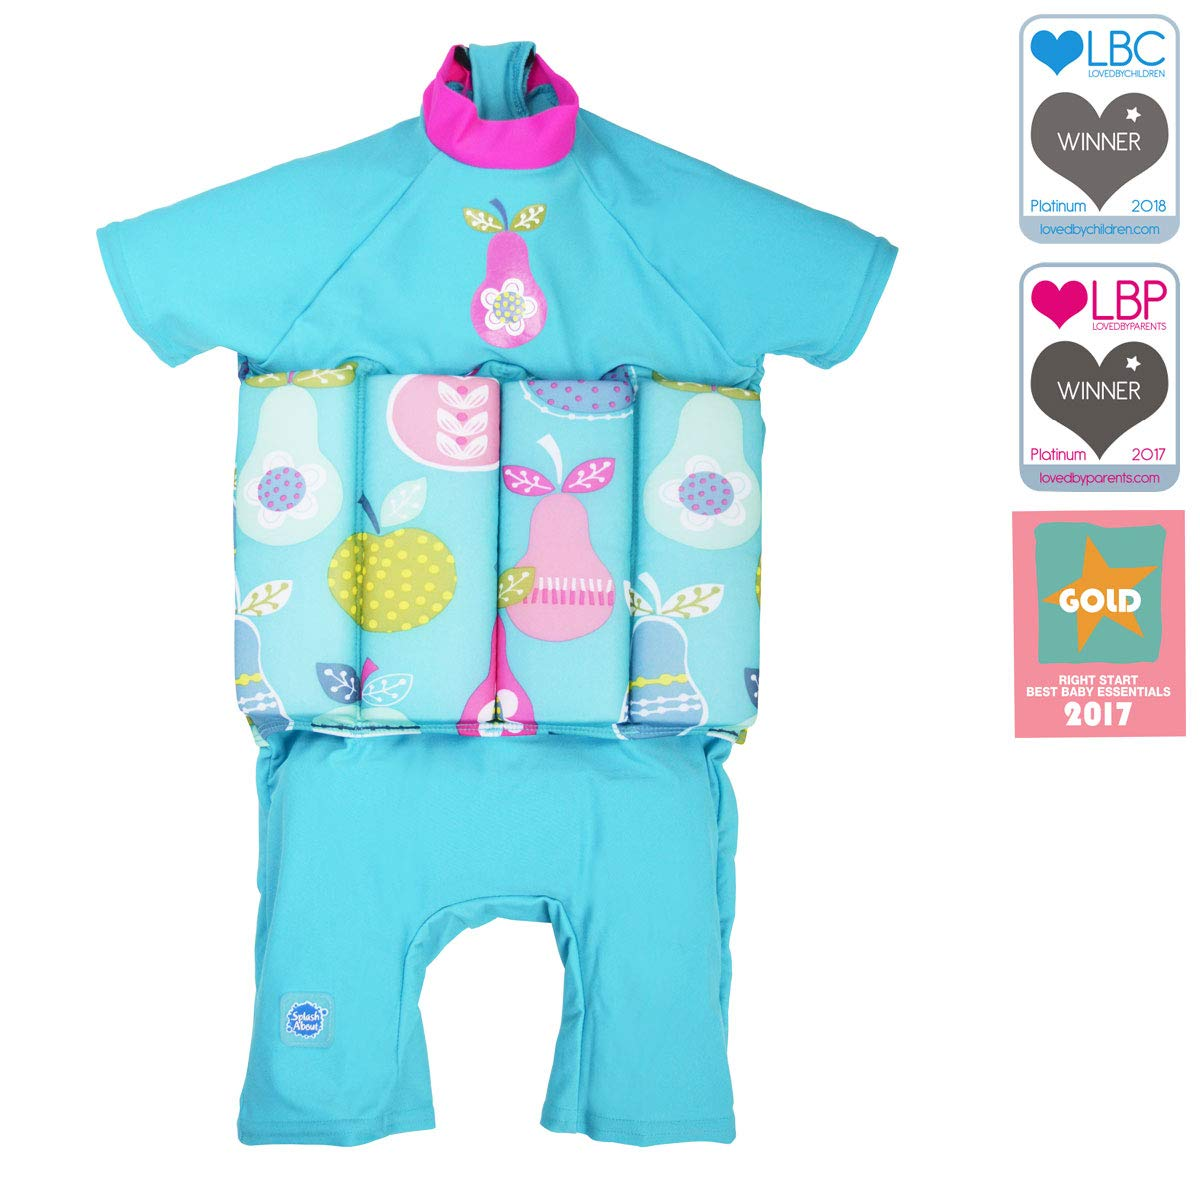 0a80eb45fb9b6 Amazon.com: Splash About Collections UV Sun Protection Float Suit with  Adjustable Buoyancy (Tutti Frutti, 1-2 Years (Chest: 51cm | Length: 37cm)):  Sports & ...